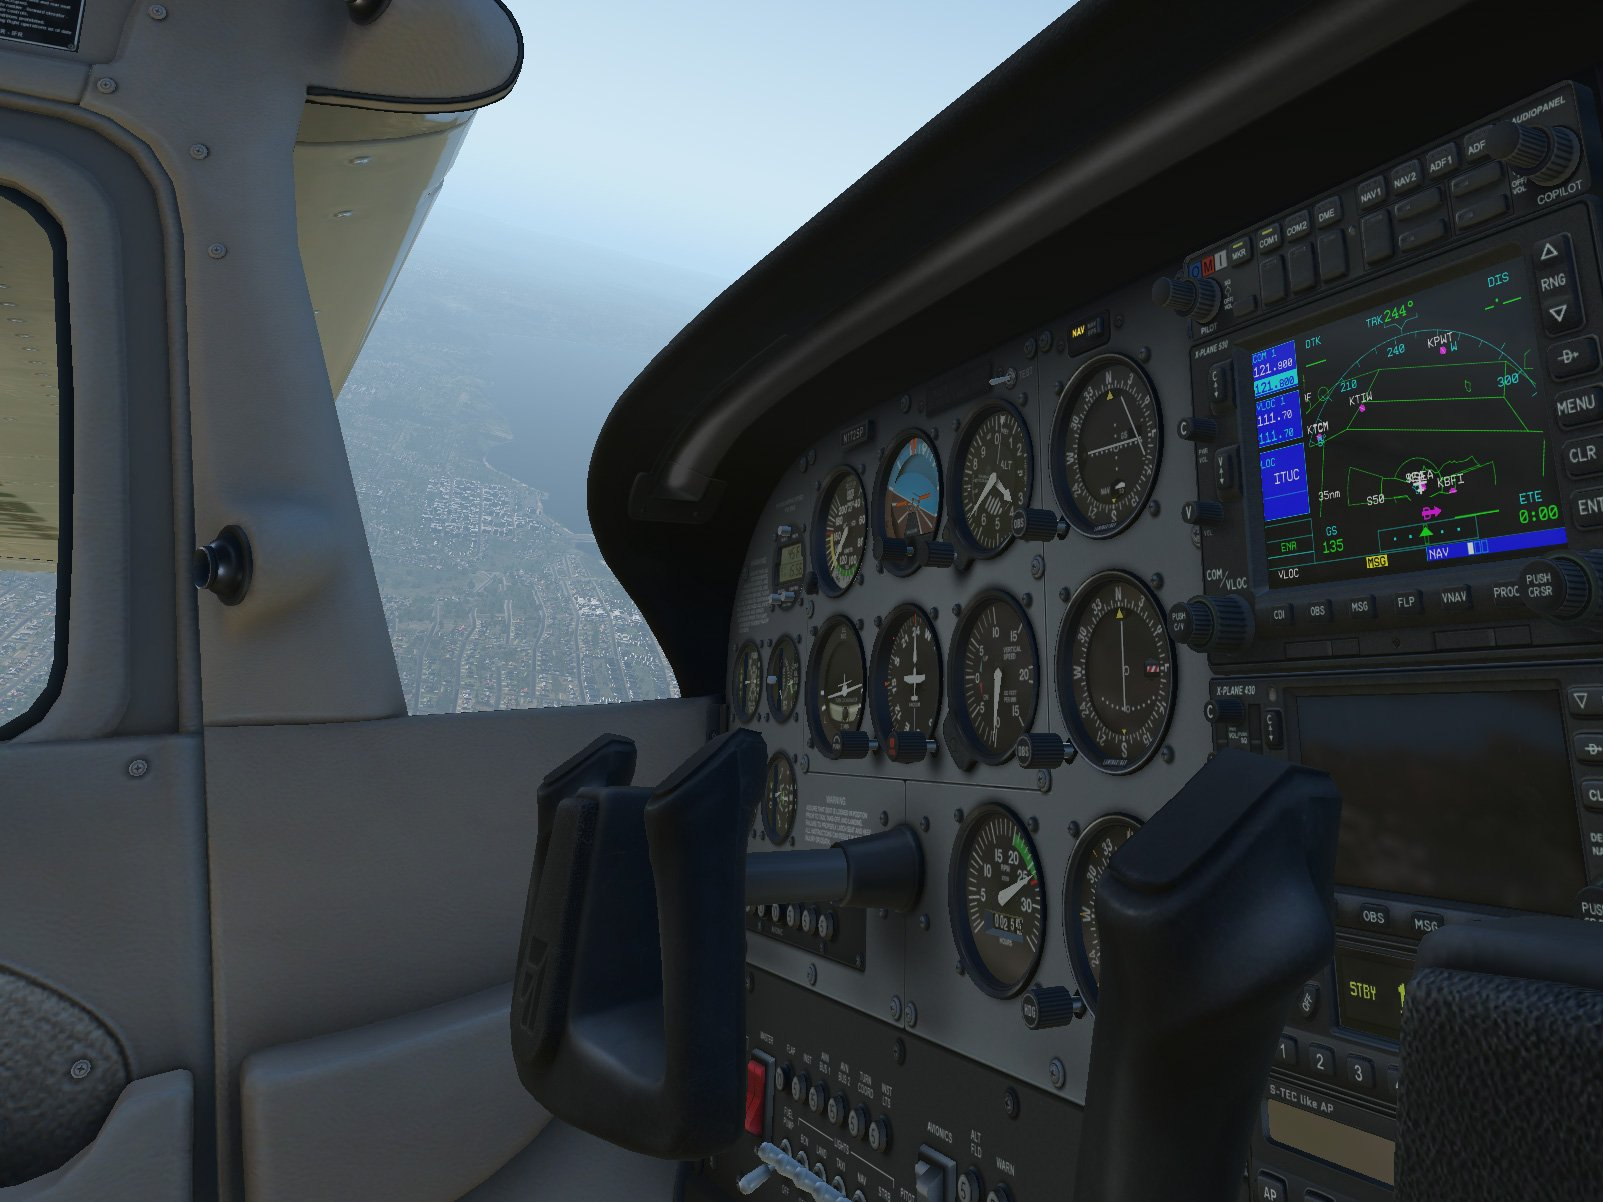 Official Version - X-Plane 11 Global Flight Simulator (PC, MAC & LINUX)